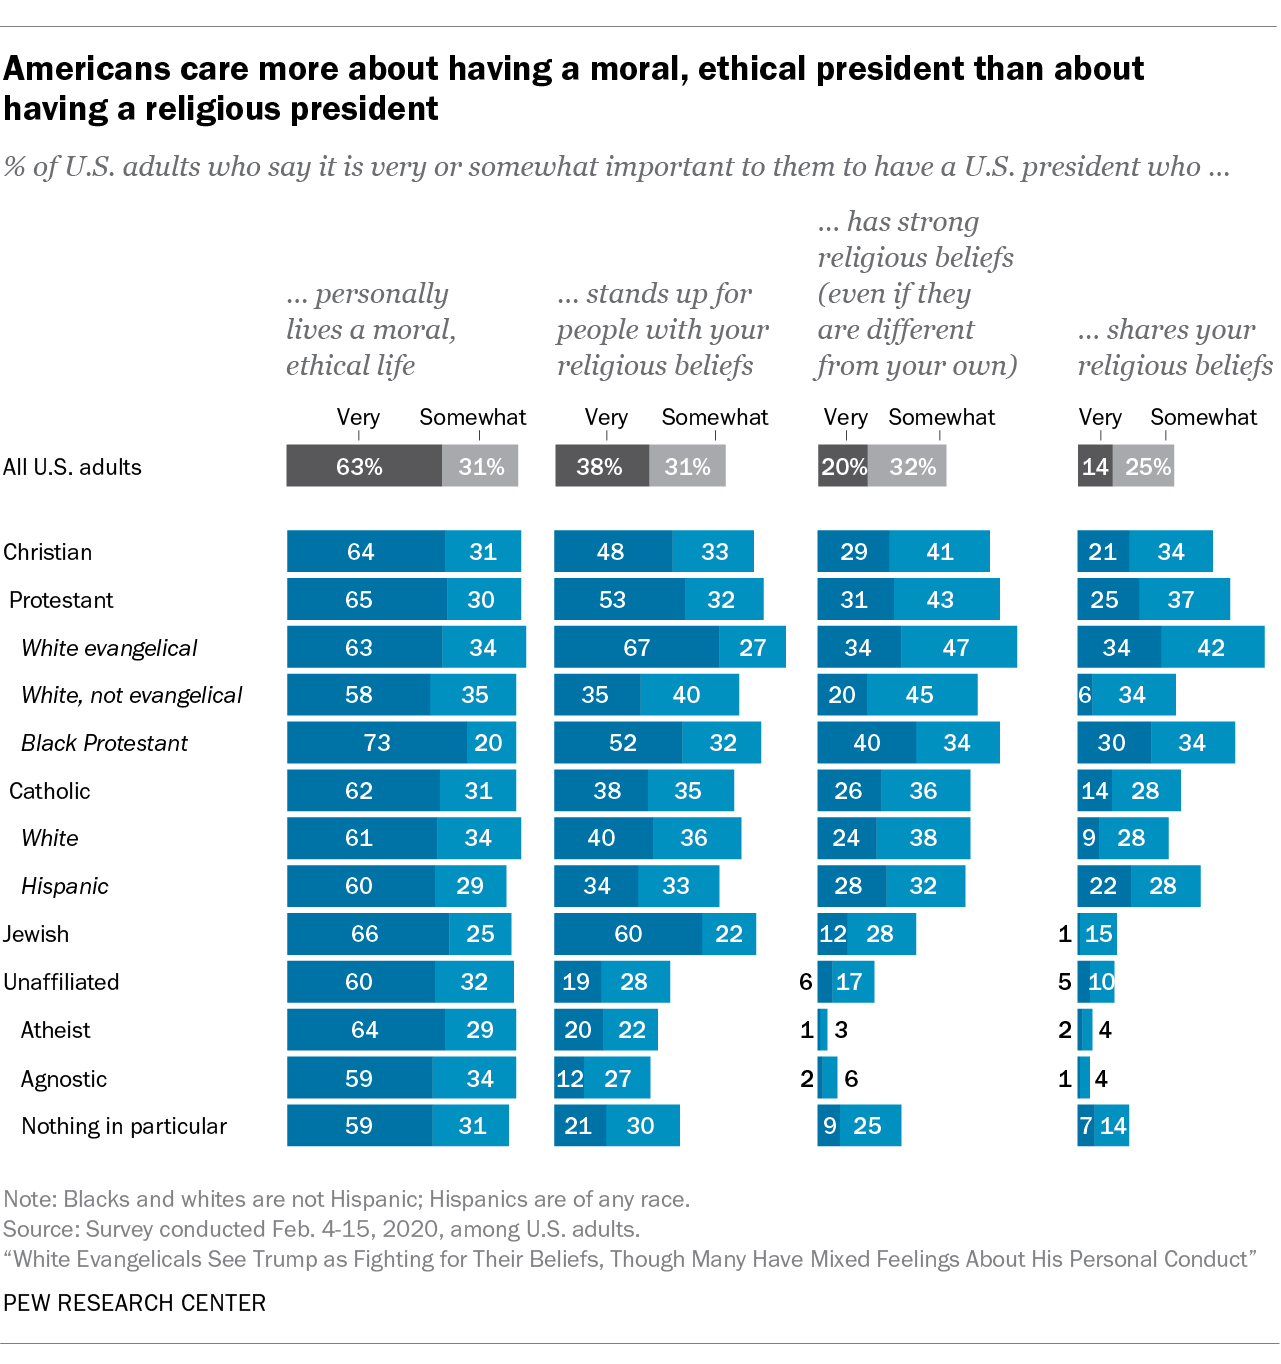 Americans care more about having a moral, ethical president than about having a religious president